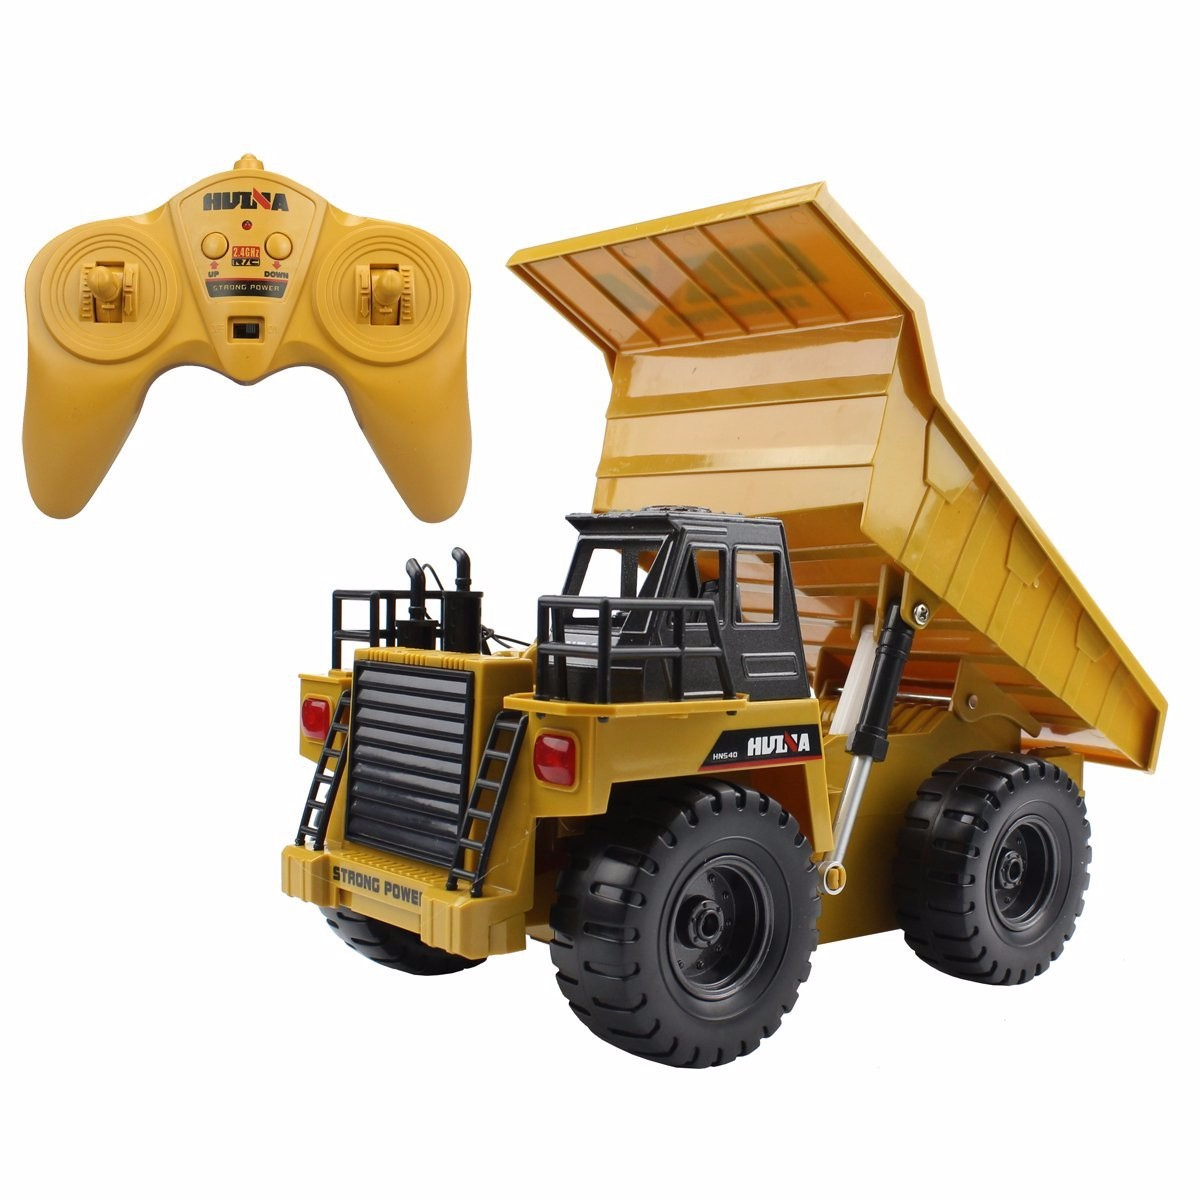 2.4Ghz 6 Channel Radio Control Dump Truck R C RTR by